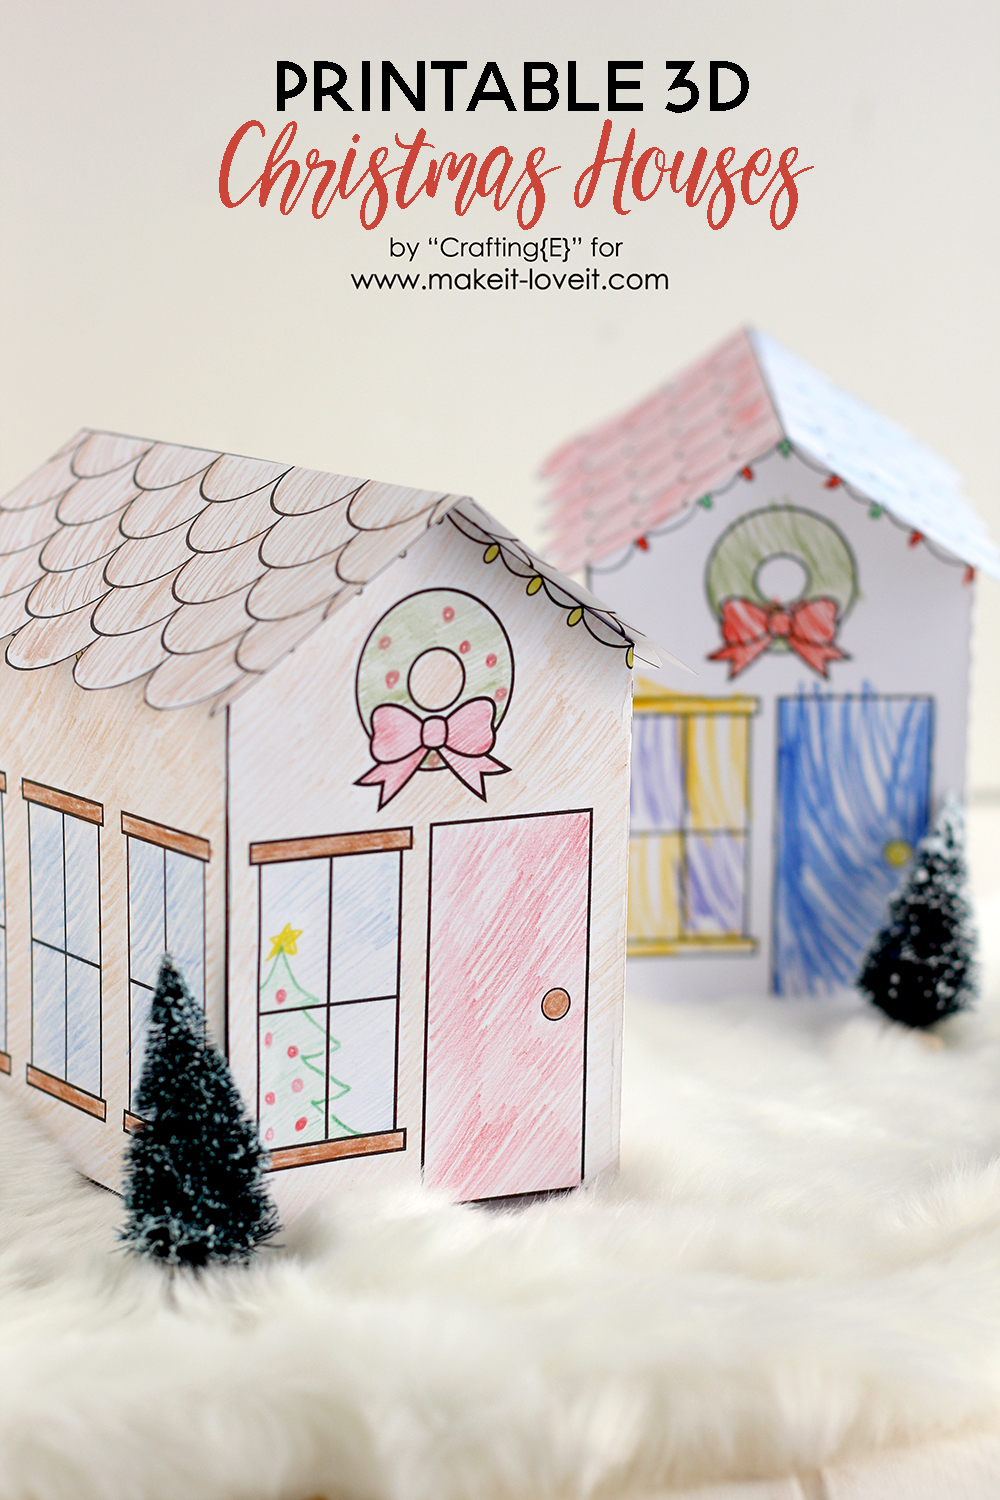 Printable 3D Christmas Houses (…great for kids!)